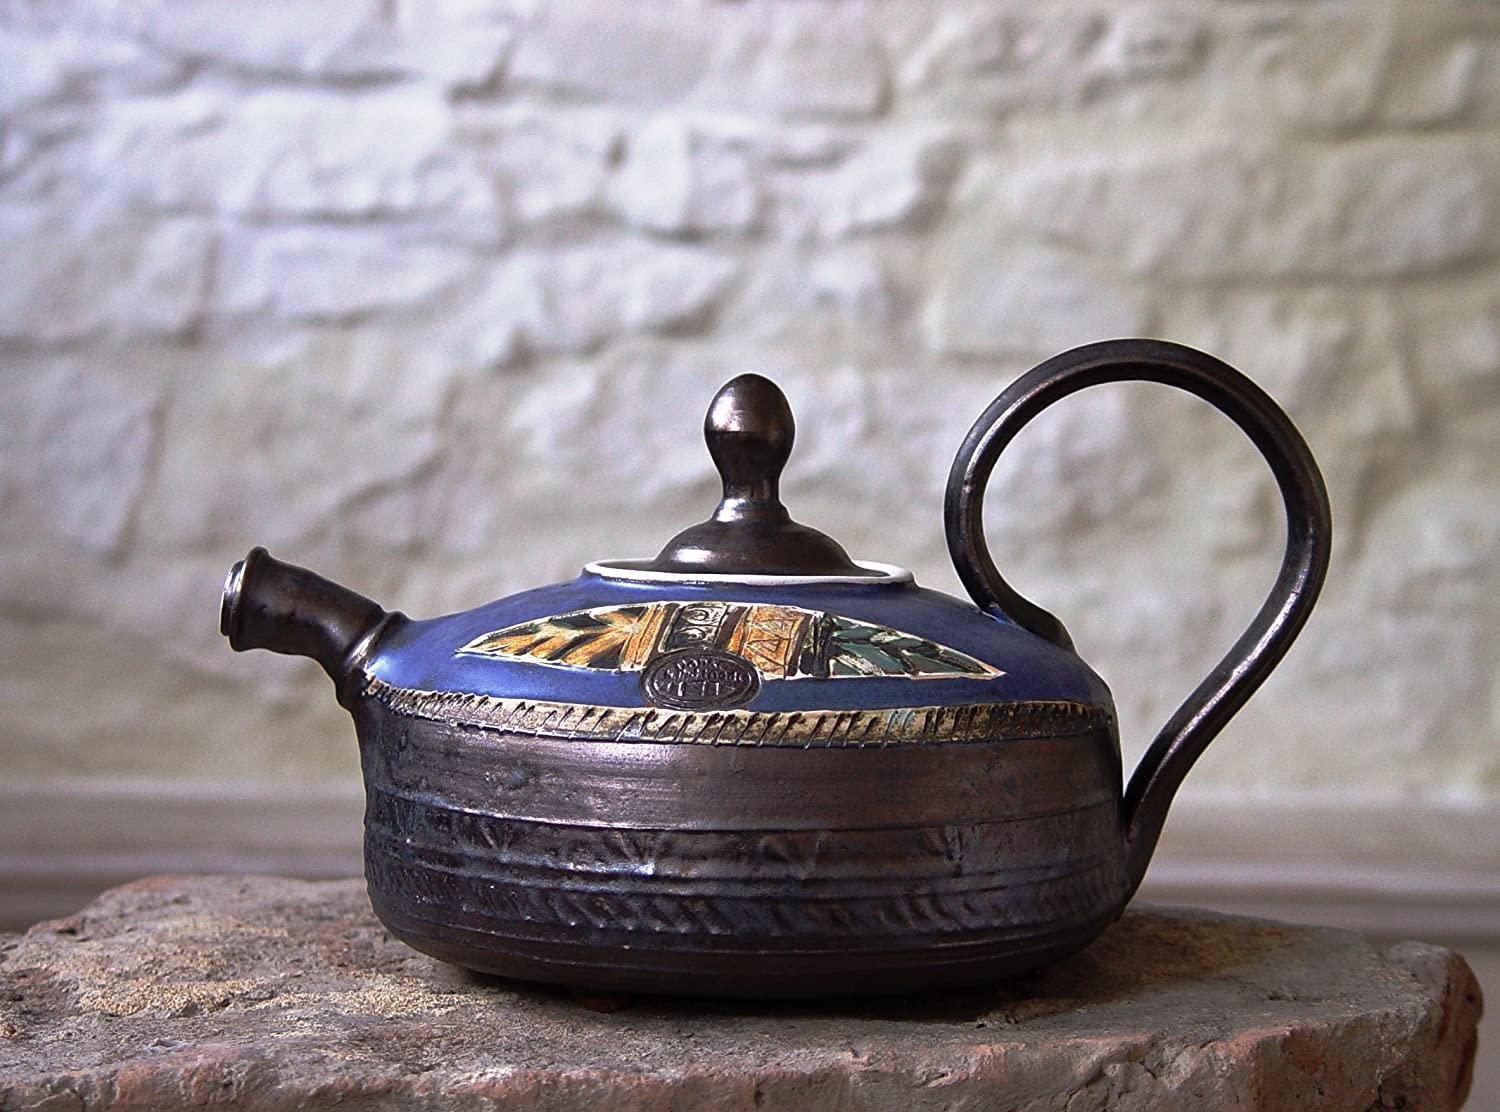 Pottery Teapot. Ceramic Tea Pot. Handmade and Hand Painted Clay Teapot, Danko Pottery, Artisan Pottery, Wheel Thrown Pottery